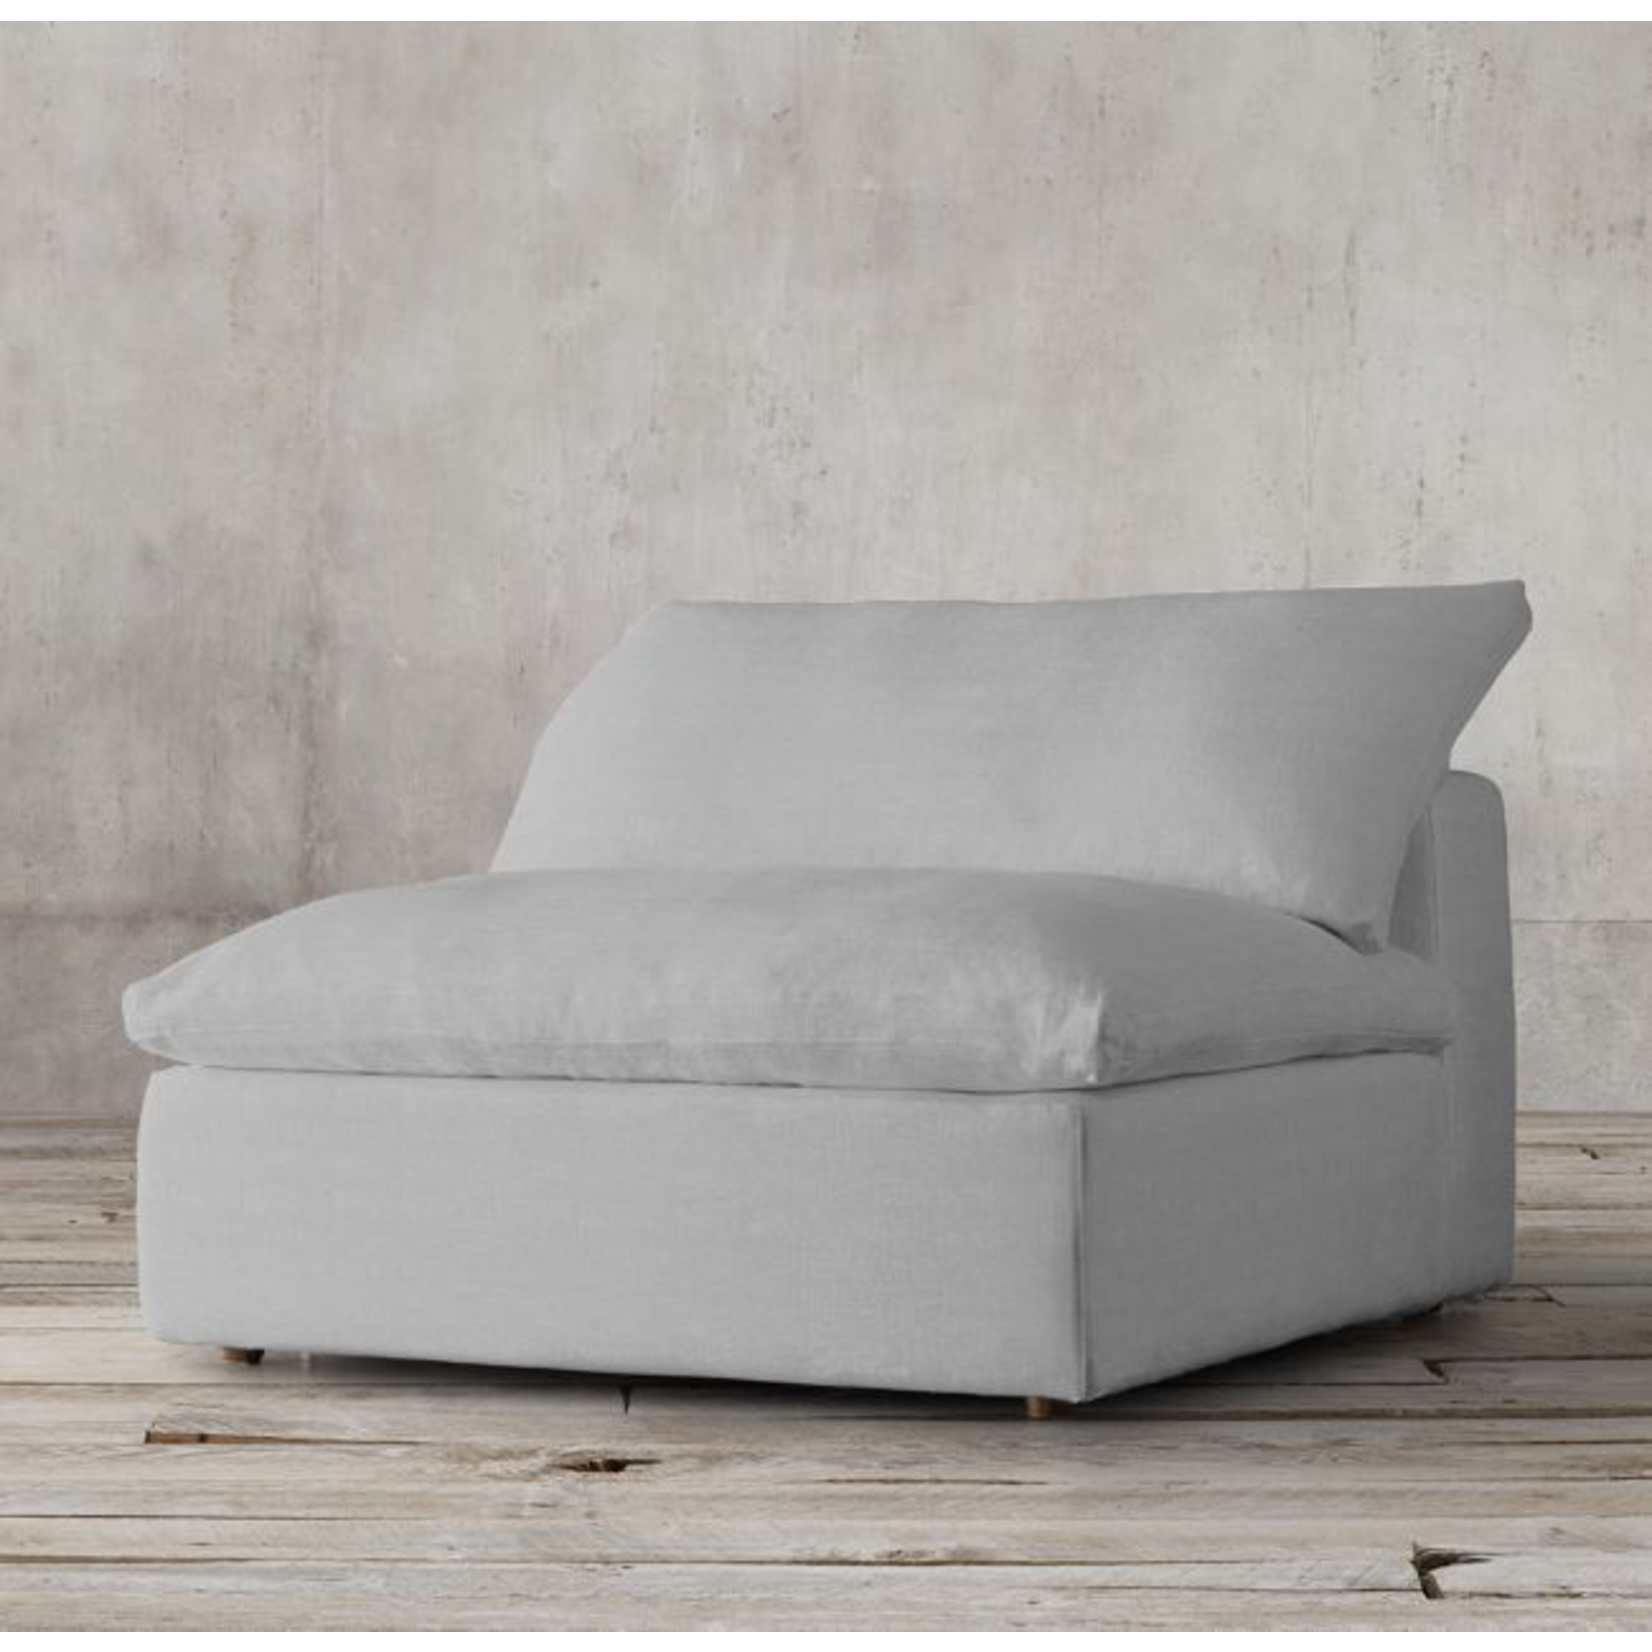 TIMOTHY OULTON CLOUD SMALL SECT 1 SEATER-GALATA LINEN GREY